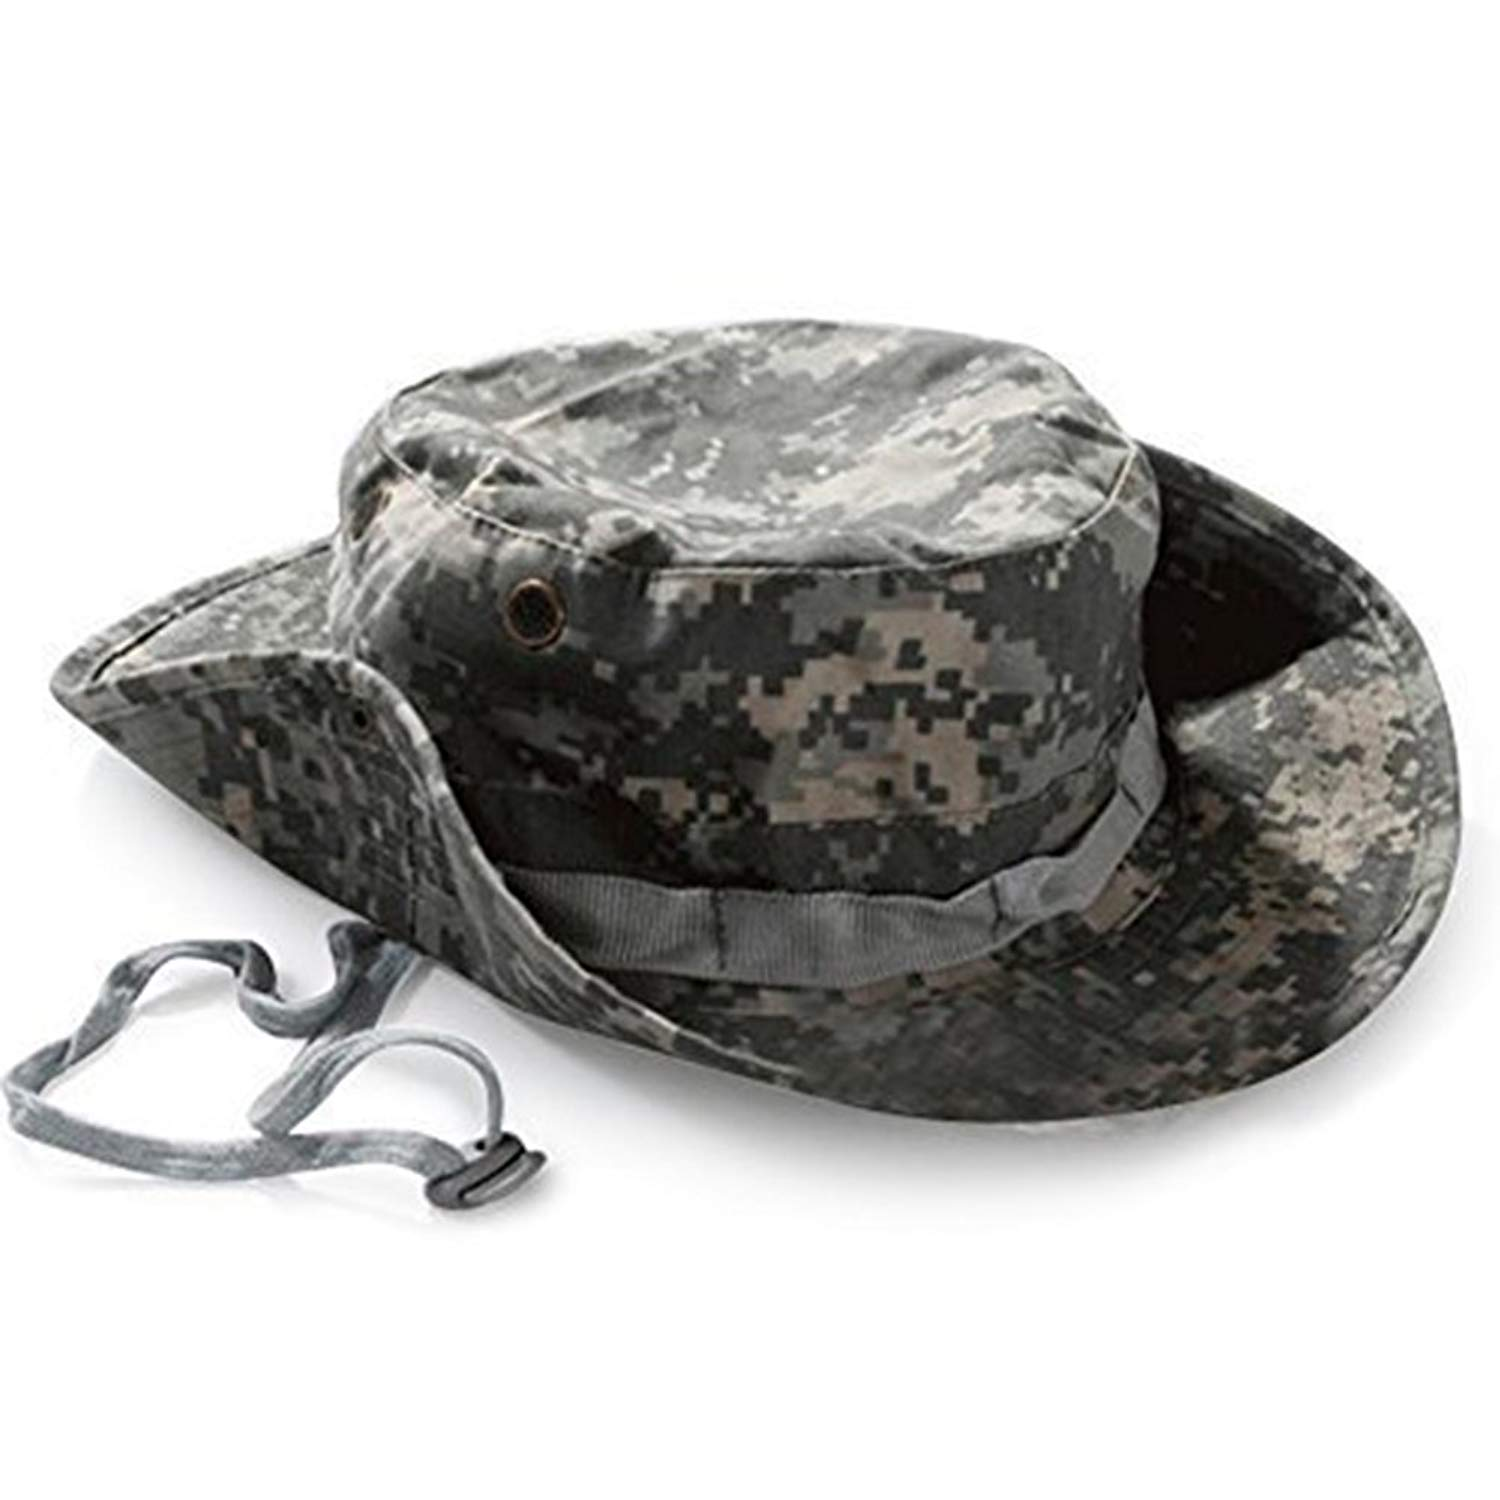 a7543a5d211 Get Quotations · Yonger Camouflage Bucket Hat Military Fishing Camping Cap  Hunting Jungle Wide Brim Bucket Outdoor Sun-